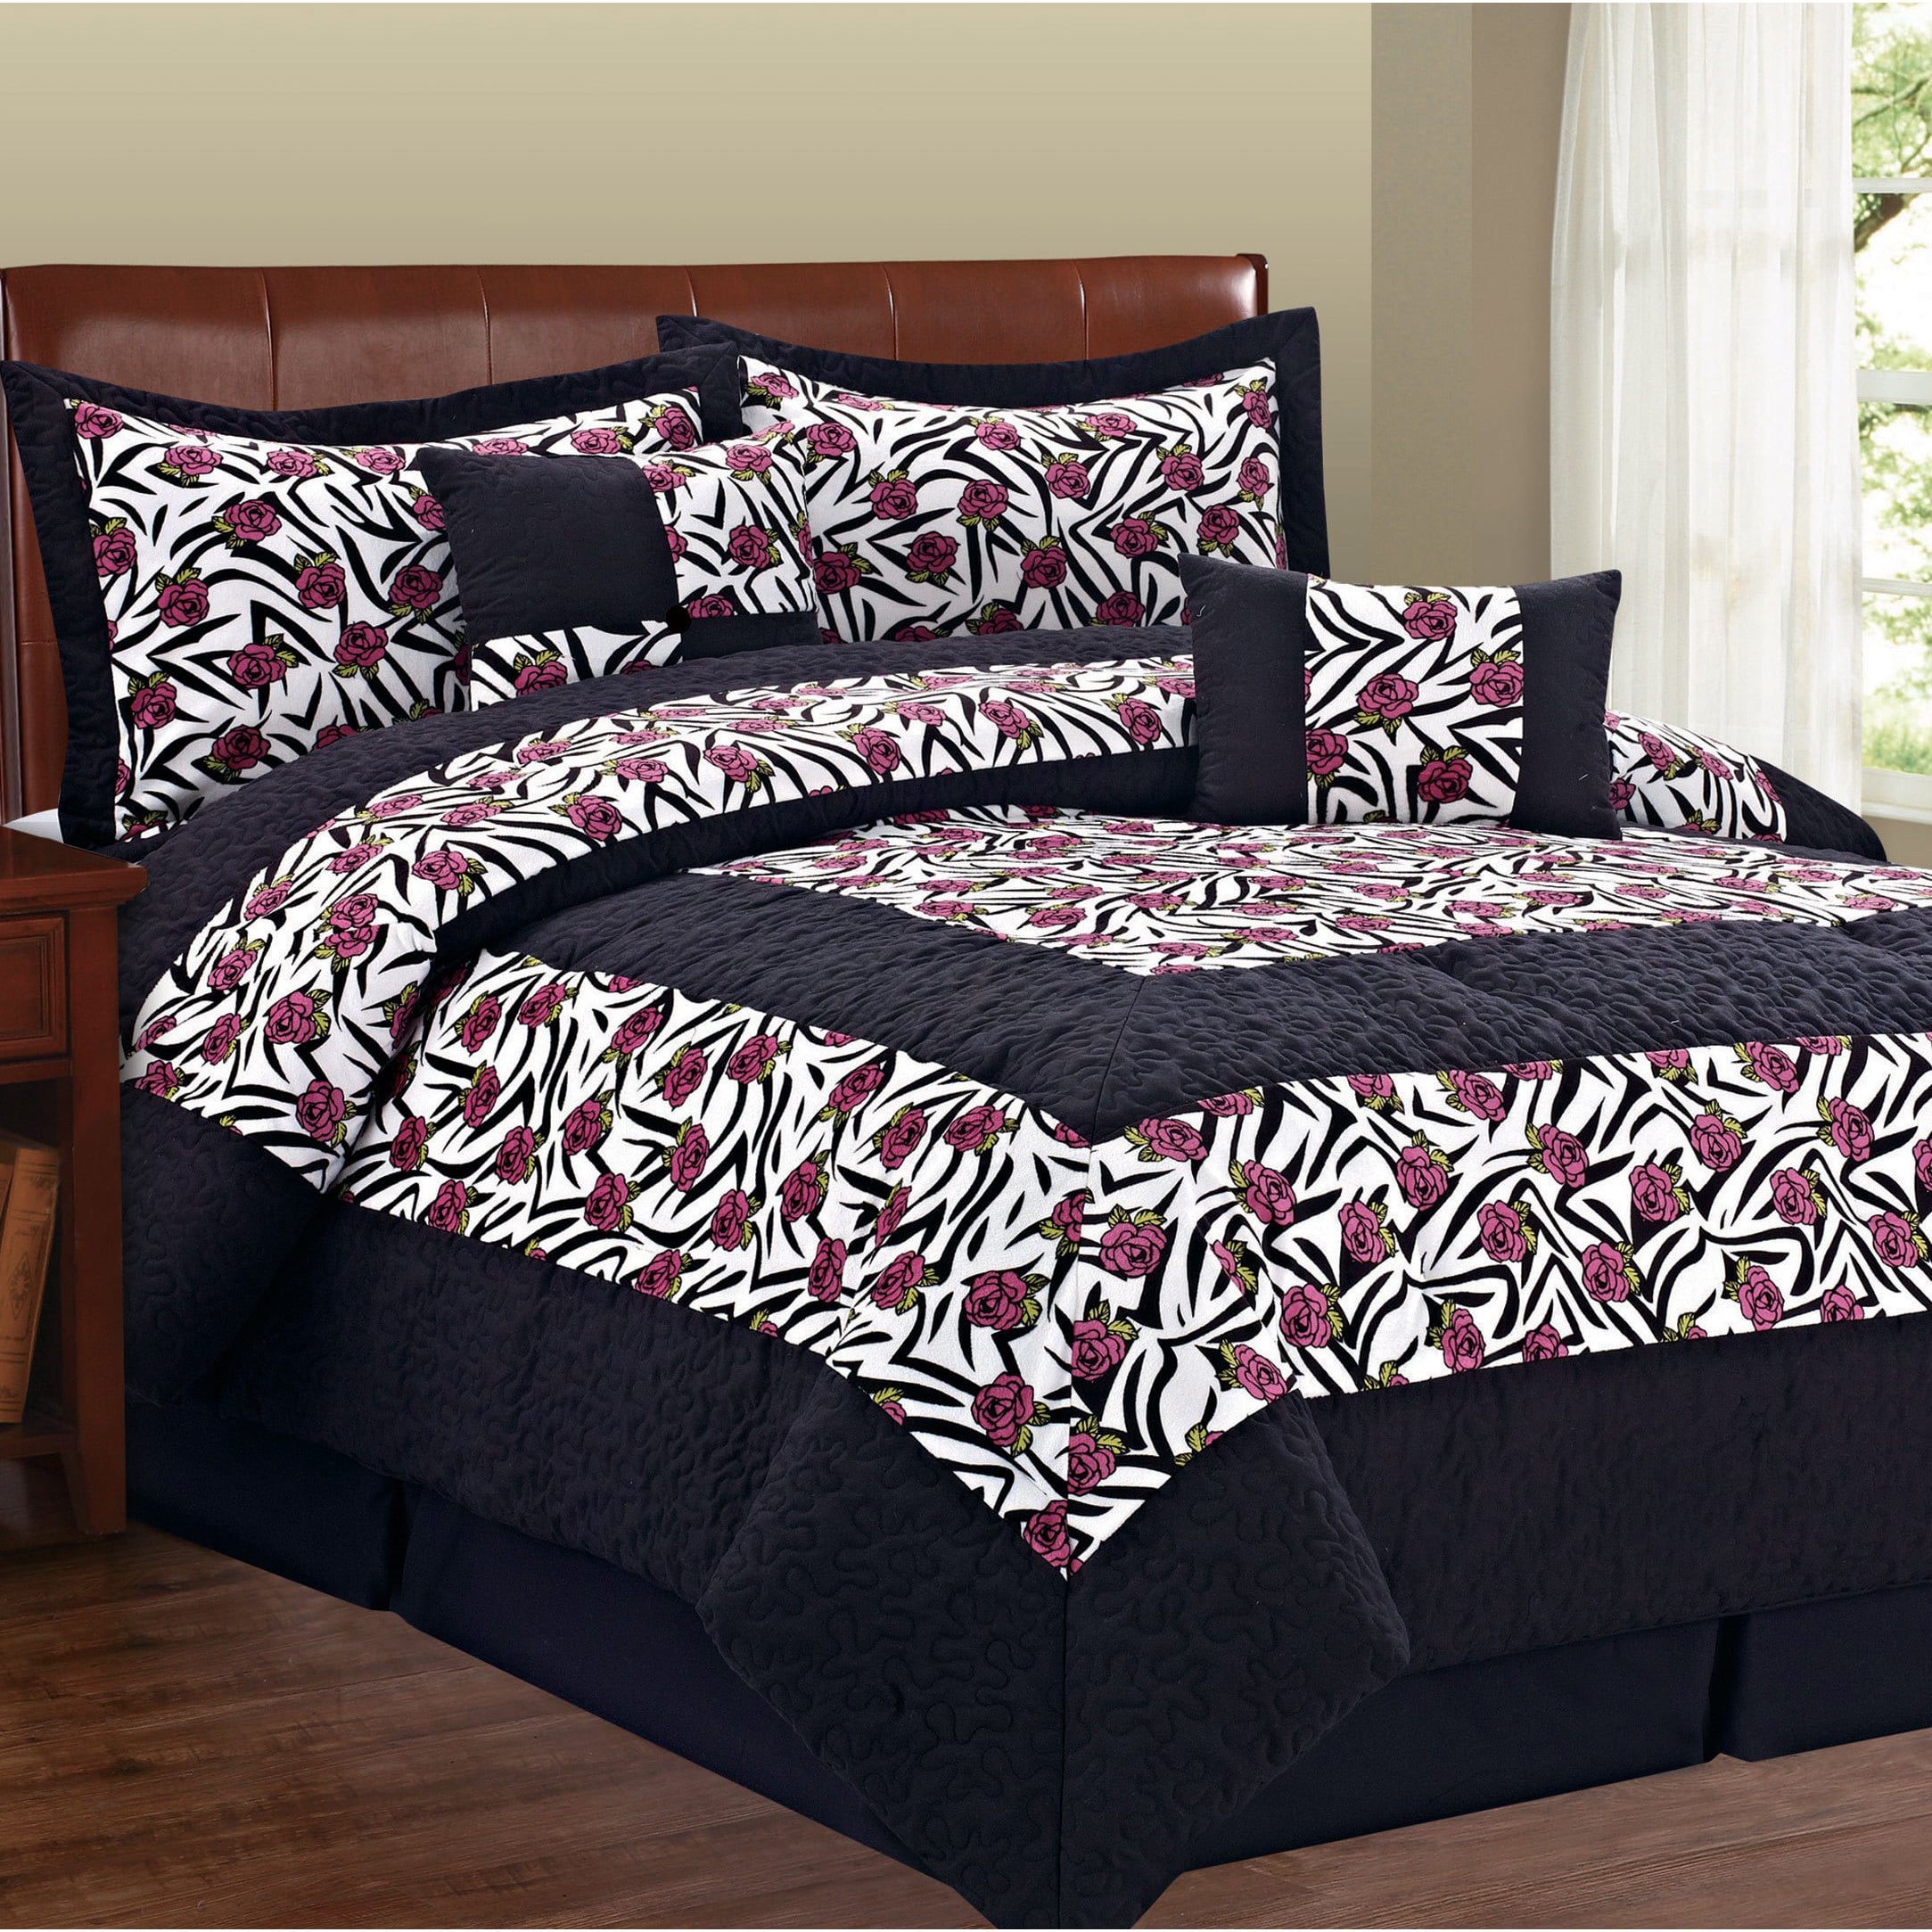 BNF Home Serenta Animal Flower 6-piece Comforter Set